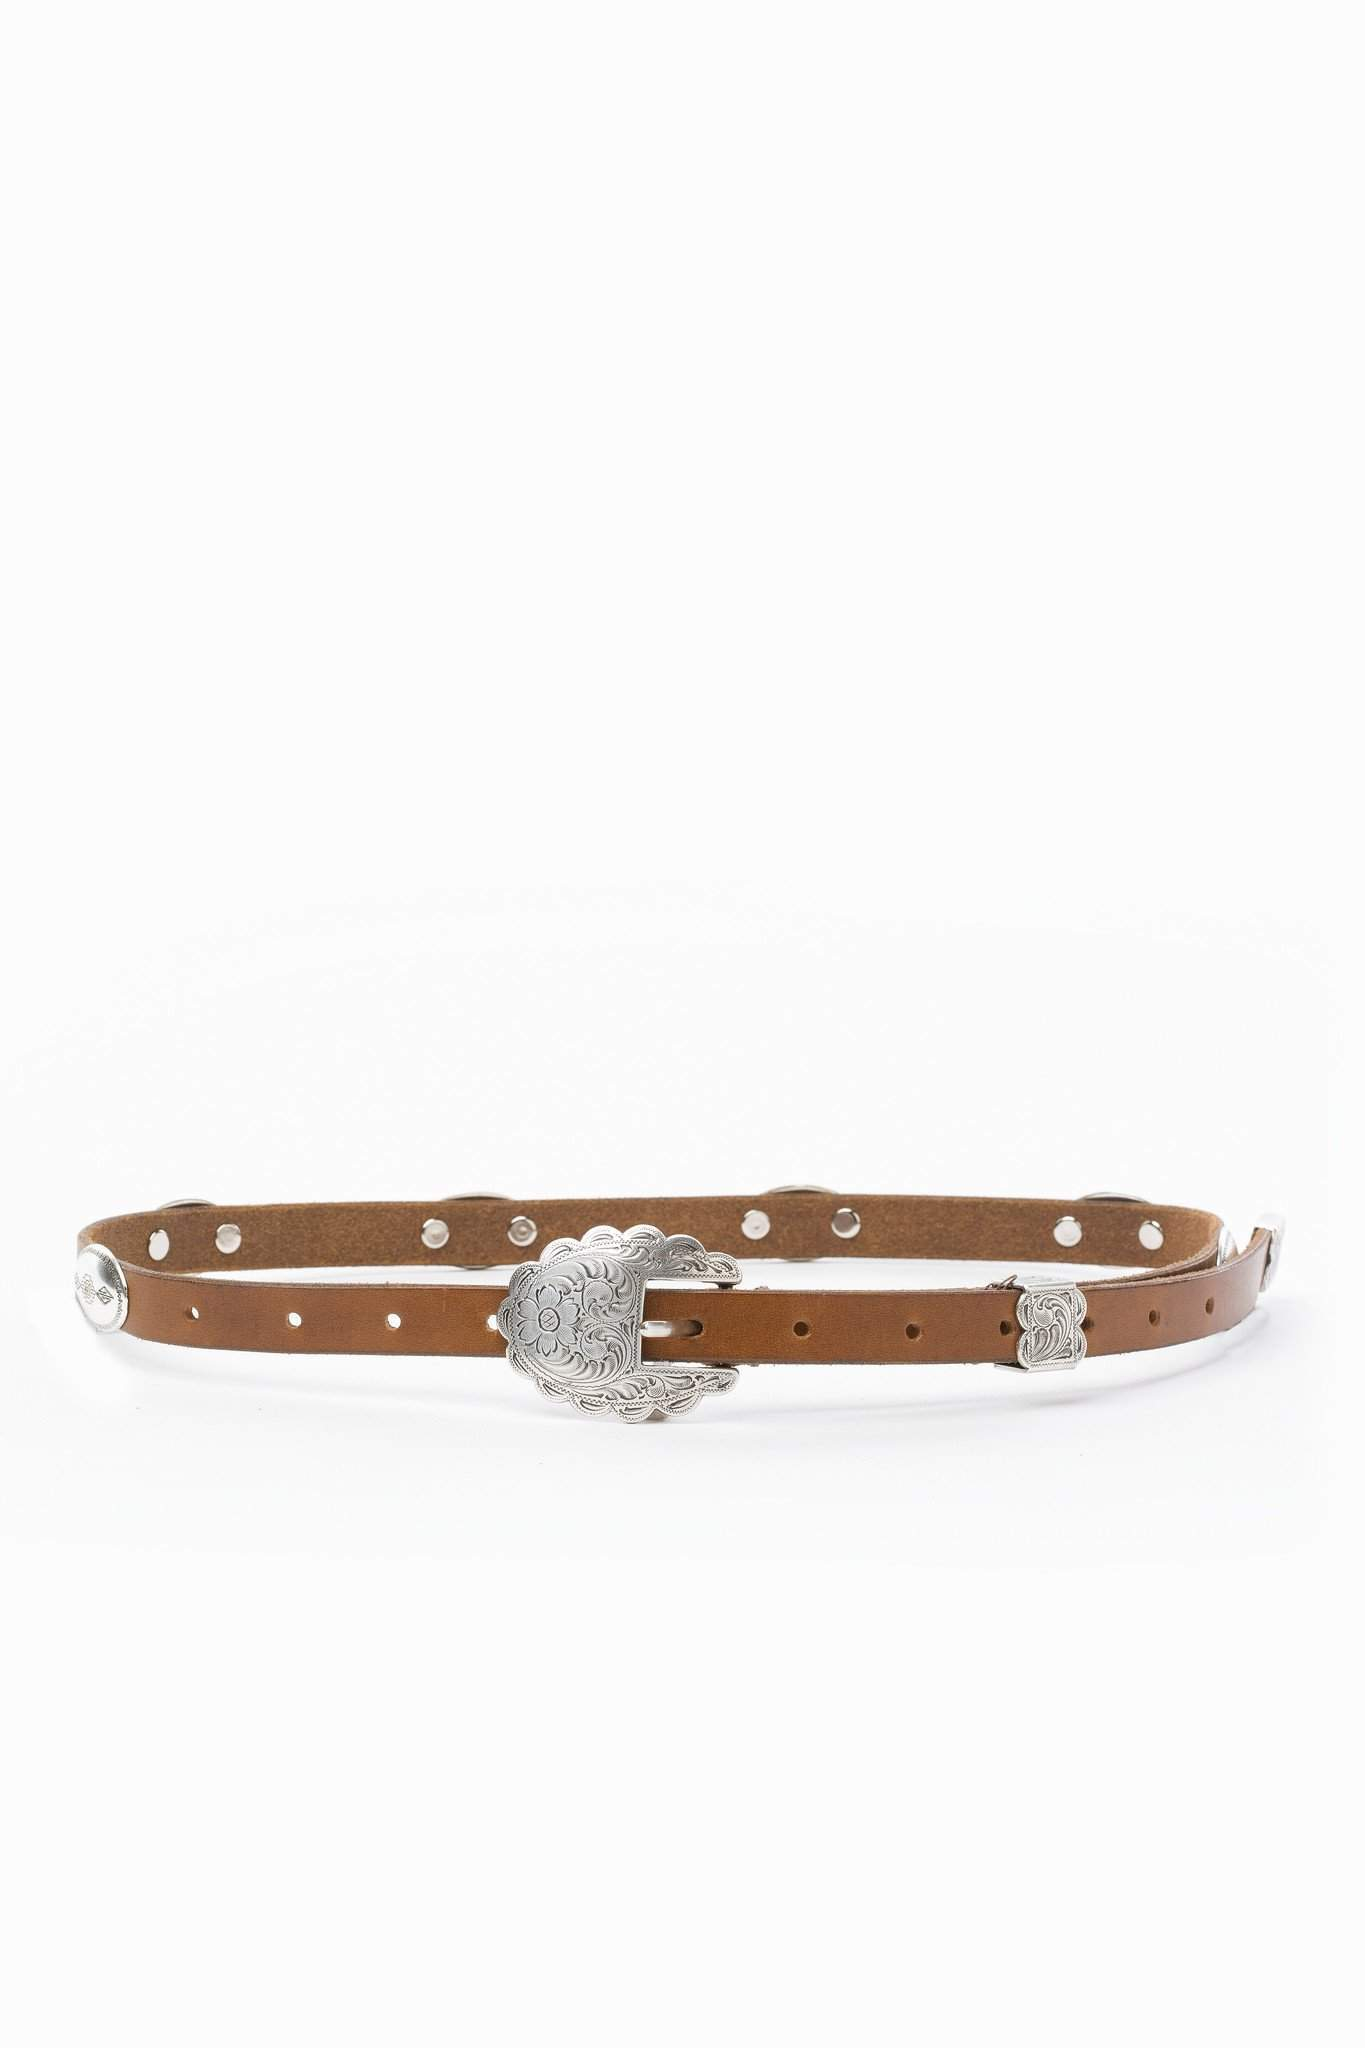 The Concho Belt with Etched Silver Buckle